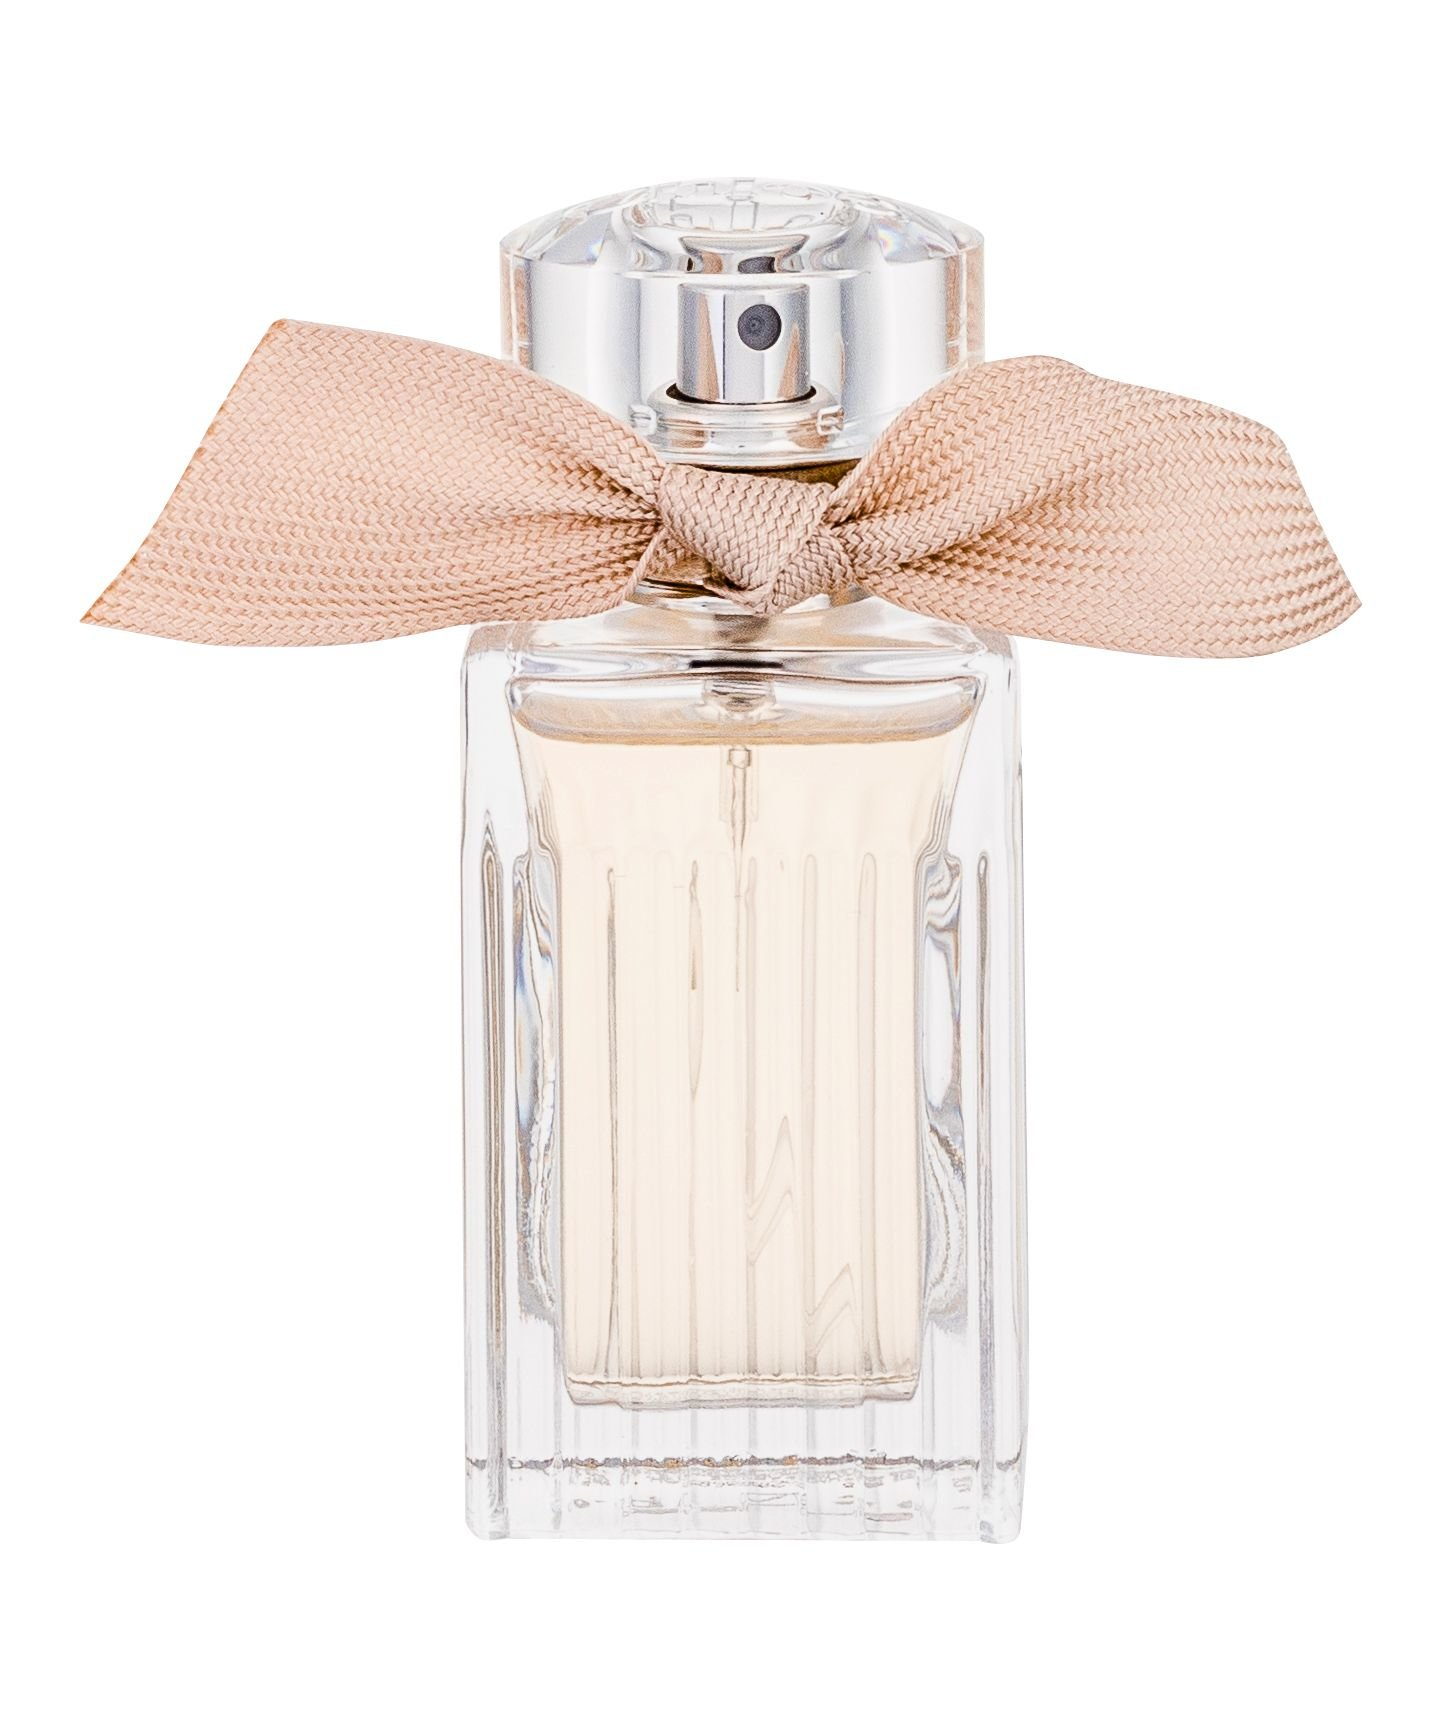 Chloe Chloe, edp 5ml